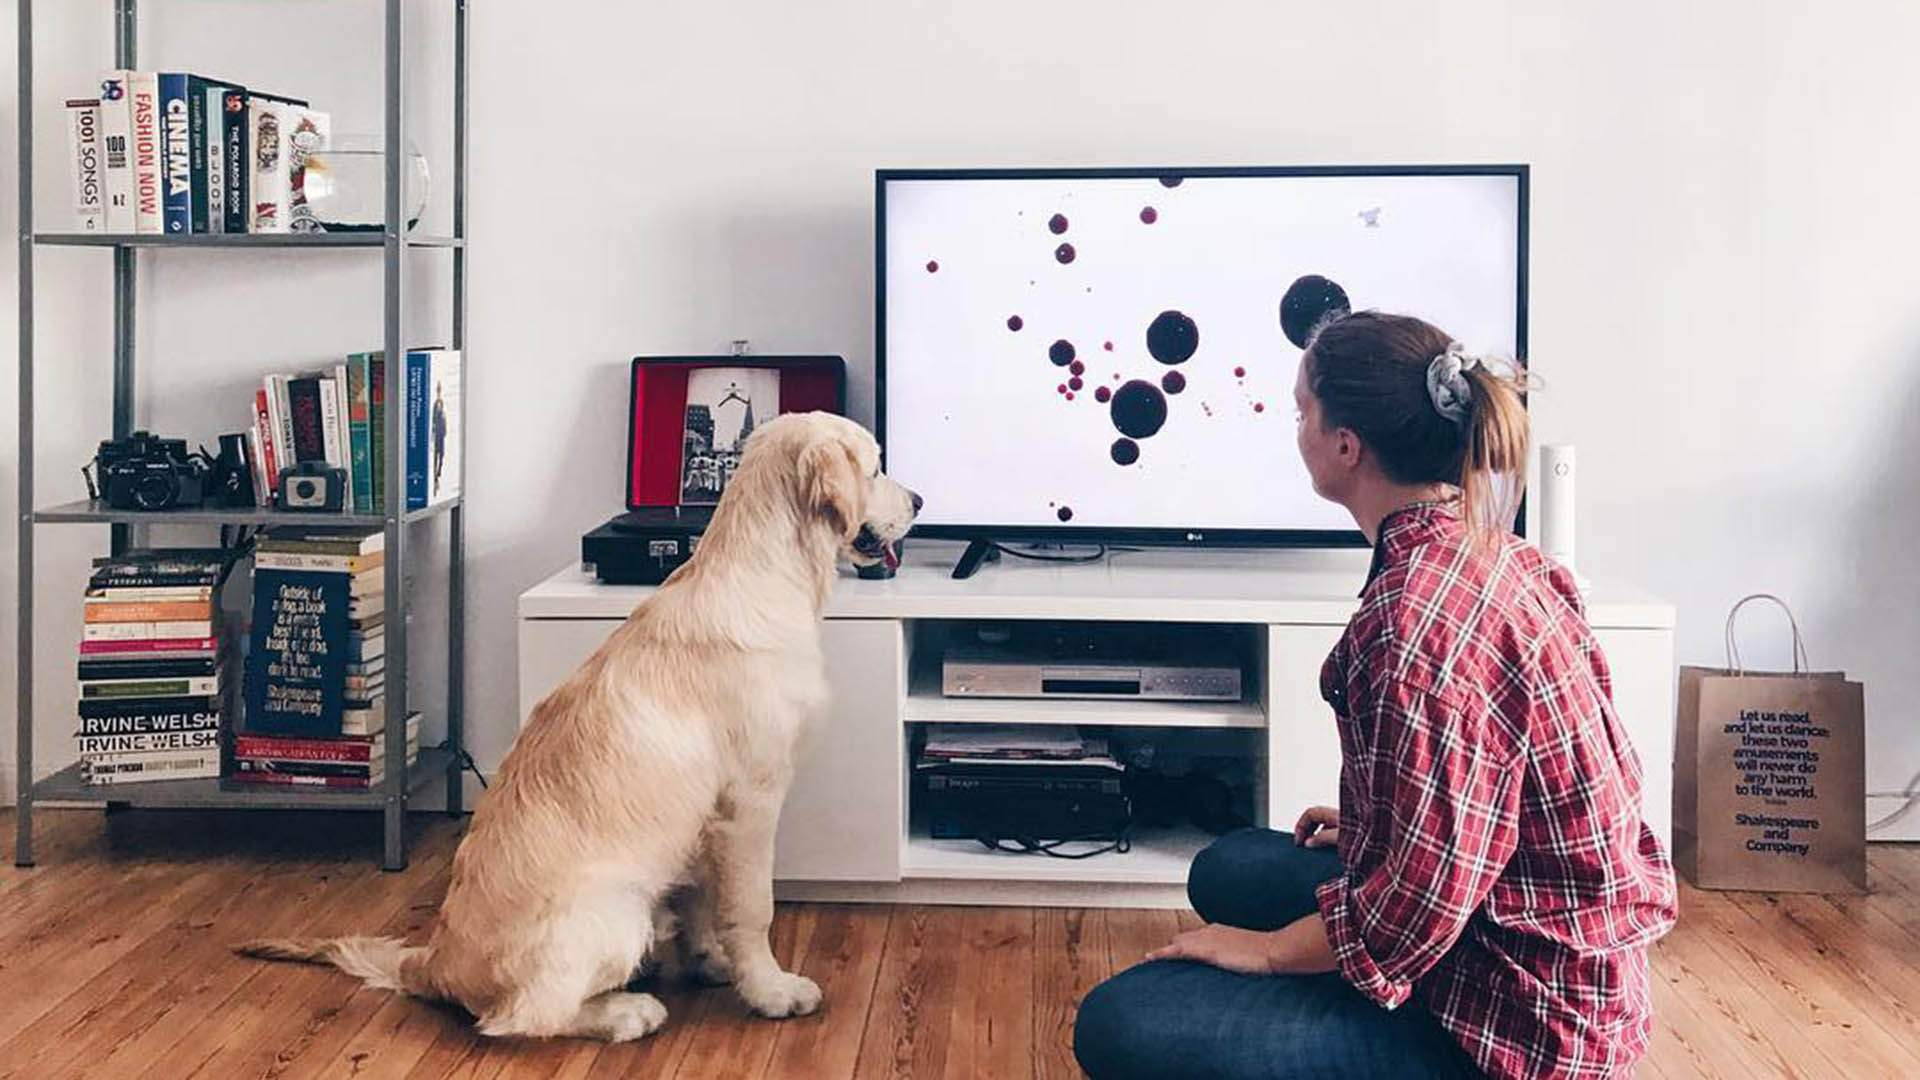 Dog TV Is the New Streaming Platform That'll Keep Your Pooch Entertained While You're Out